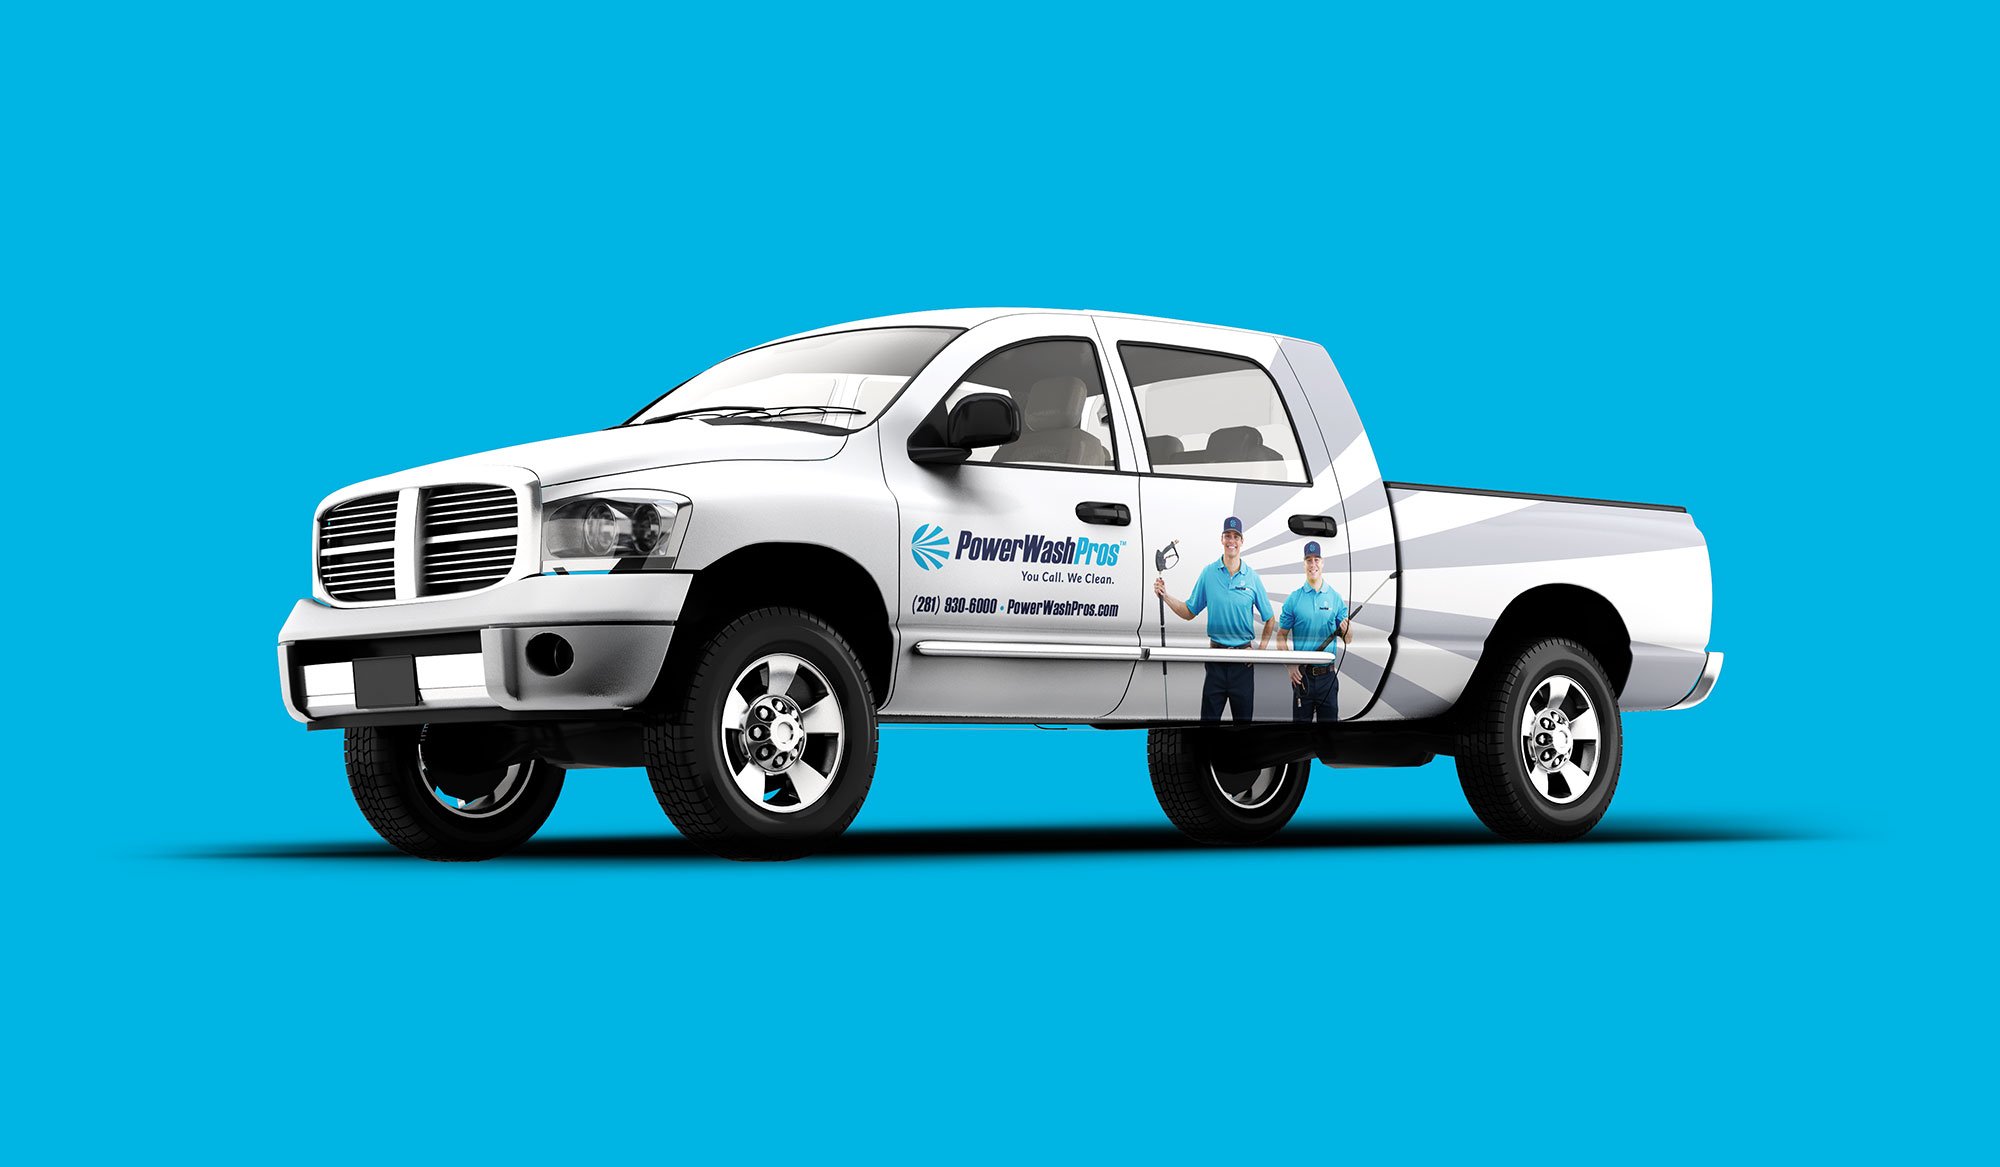 PWP vehicle wrap design